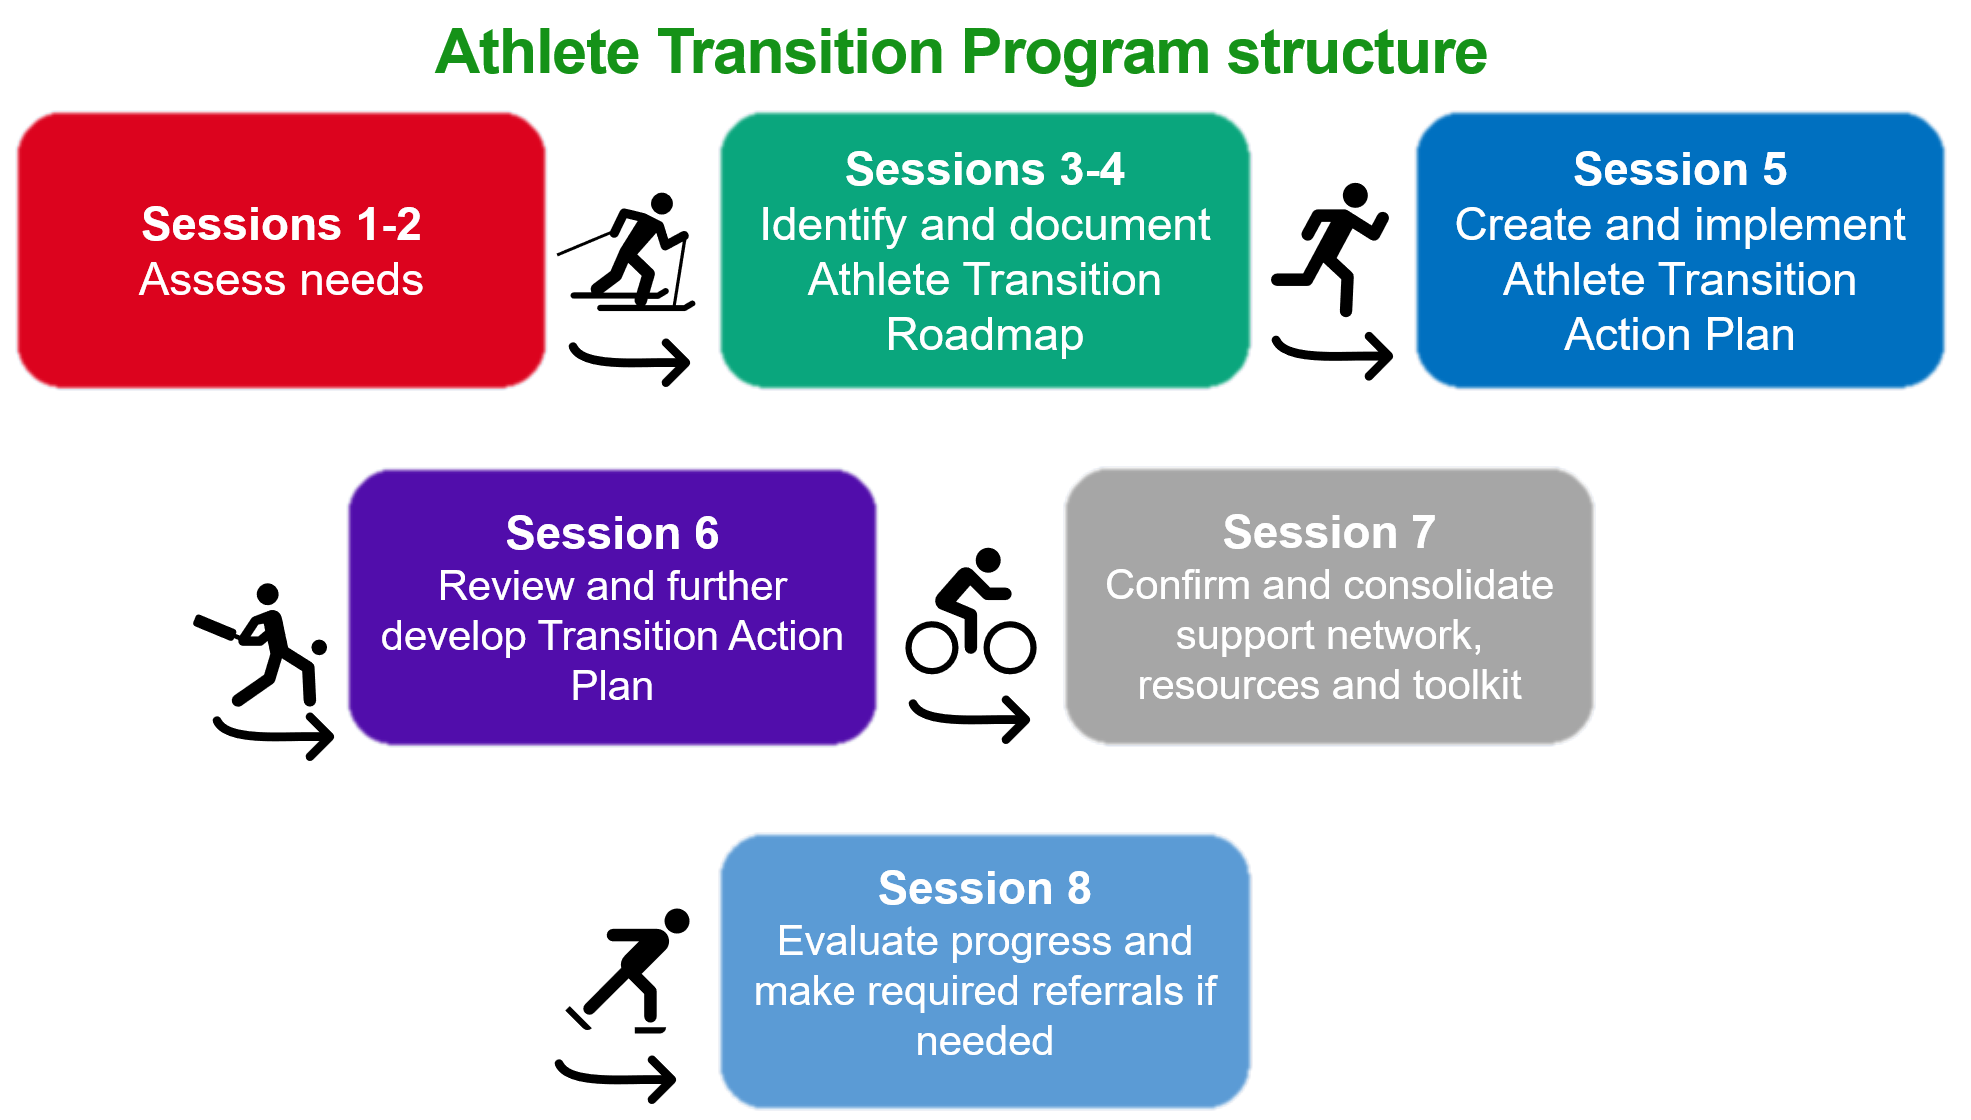 Athlete Transition Program structure